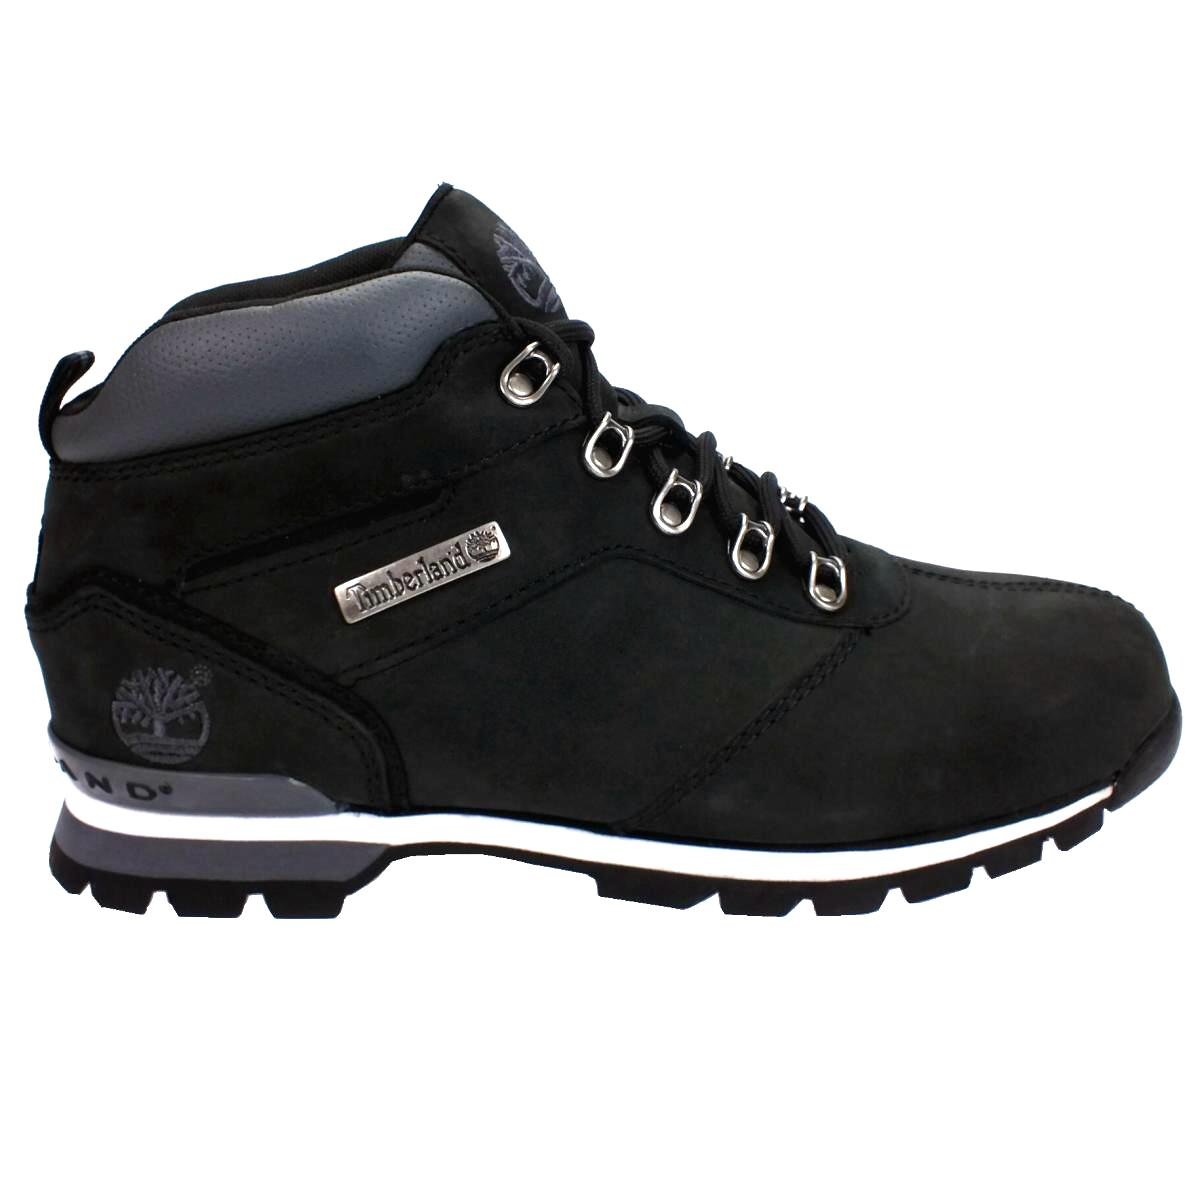 timberland splitrock2 hiker ftb schuhe winterschuhe. Black Bedroom Furniture Sets. Home Design Ideas